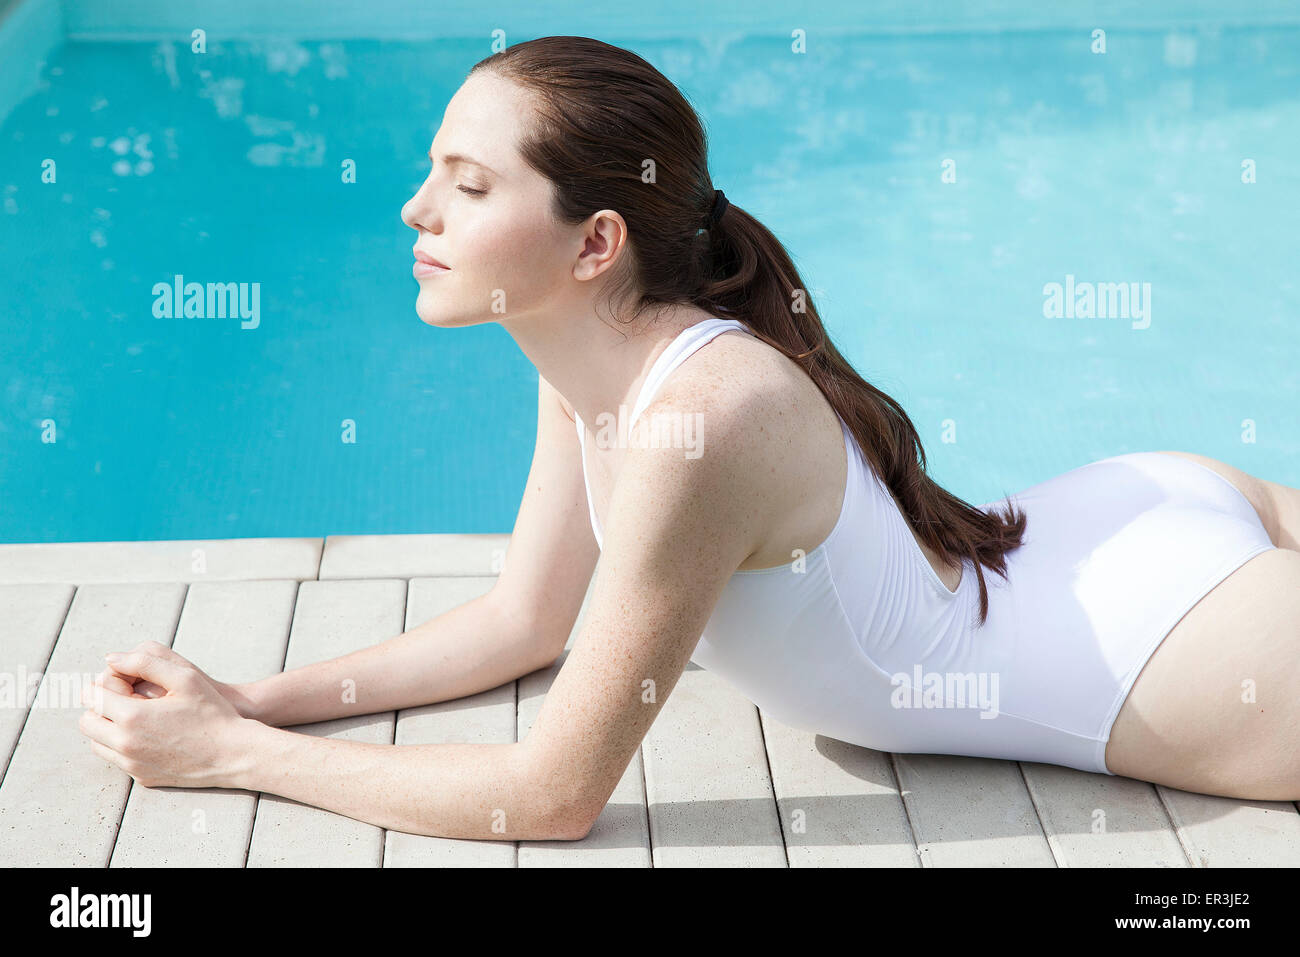 Young woman sunbathing beside pool with eyes closed - Stock Image